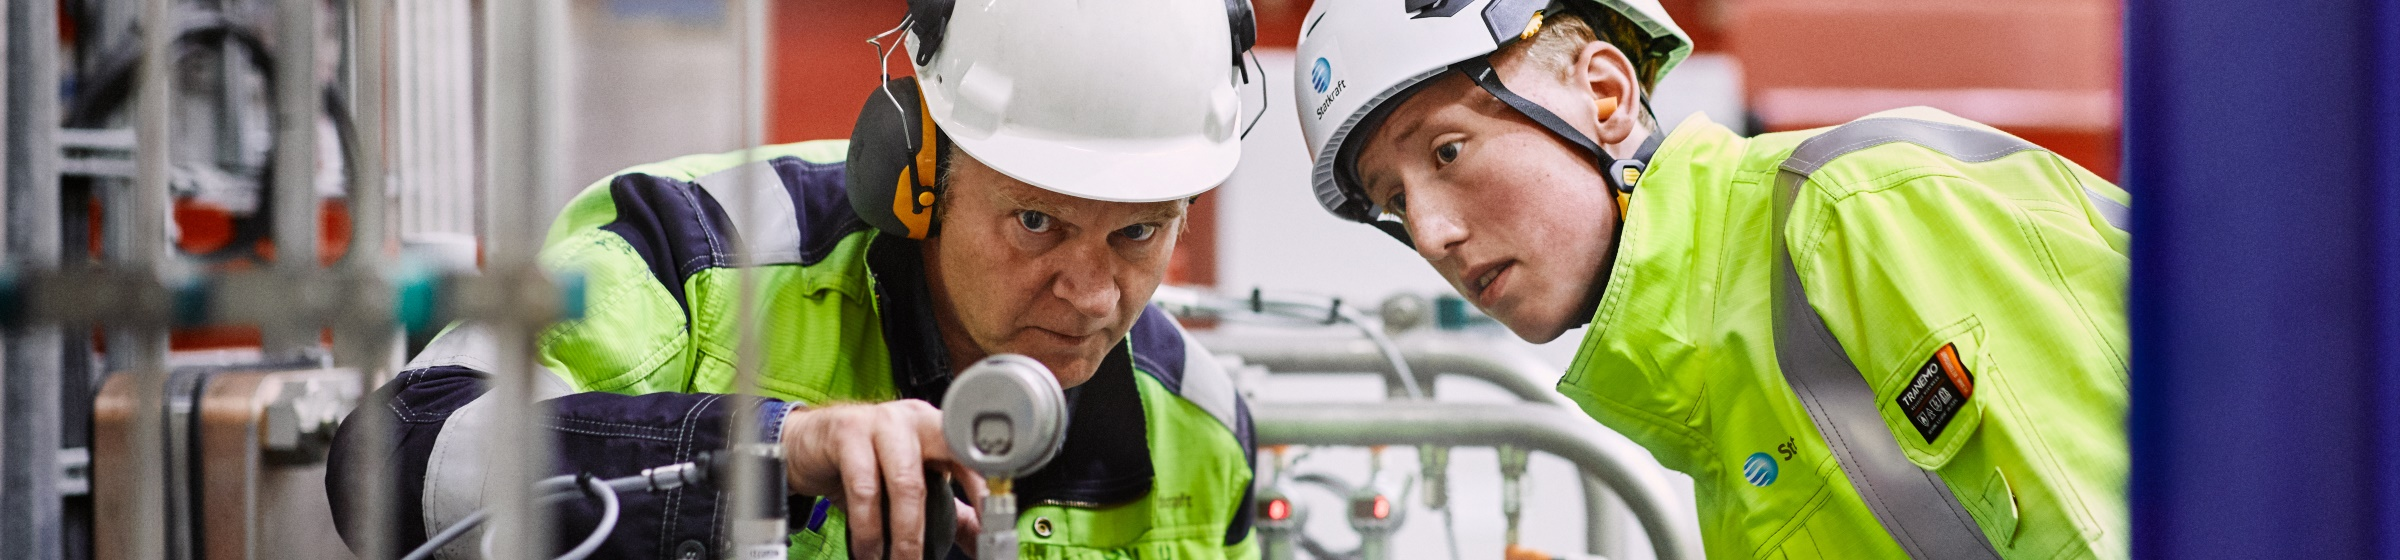 Employees looking at equipment at Ringendalen power plant in Norway